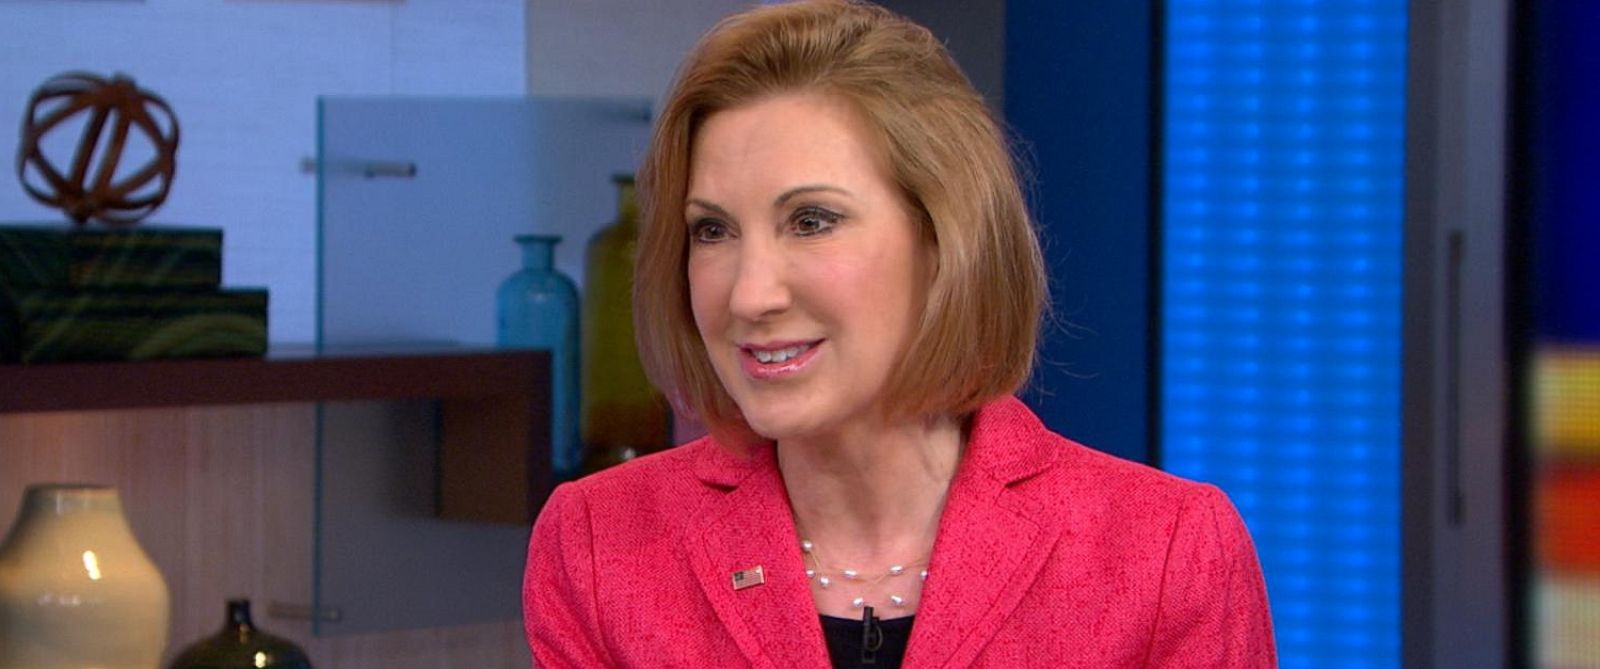 """PHOTO: Carly Fiorina is pictured on """"Good Morning America"""" on May 4, 2015."""